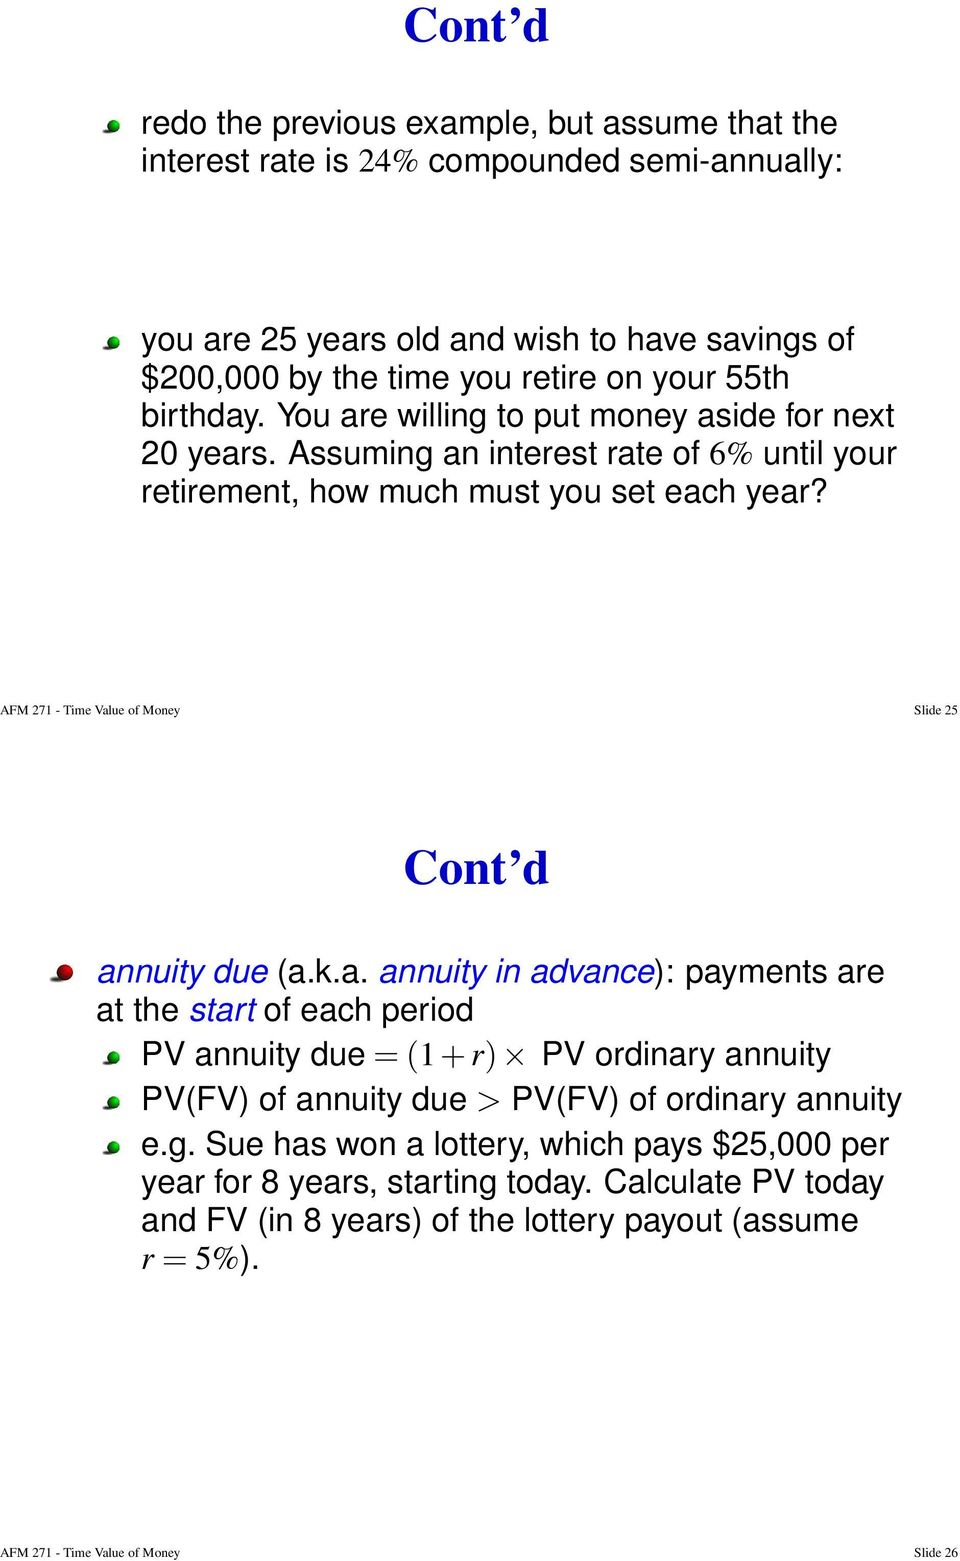 AFM 271 - Time Value of Money Slide 25 annuity due (a.k.a. annuity in advance): payments are at the start of each period PV annuity due = (1 + r) PV ordinary annuity PV(FV) of annuity due > PV(FV) of ordinary annuity e.